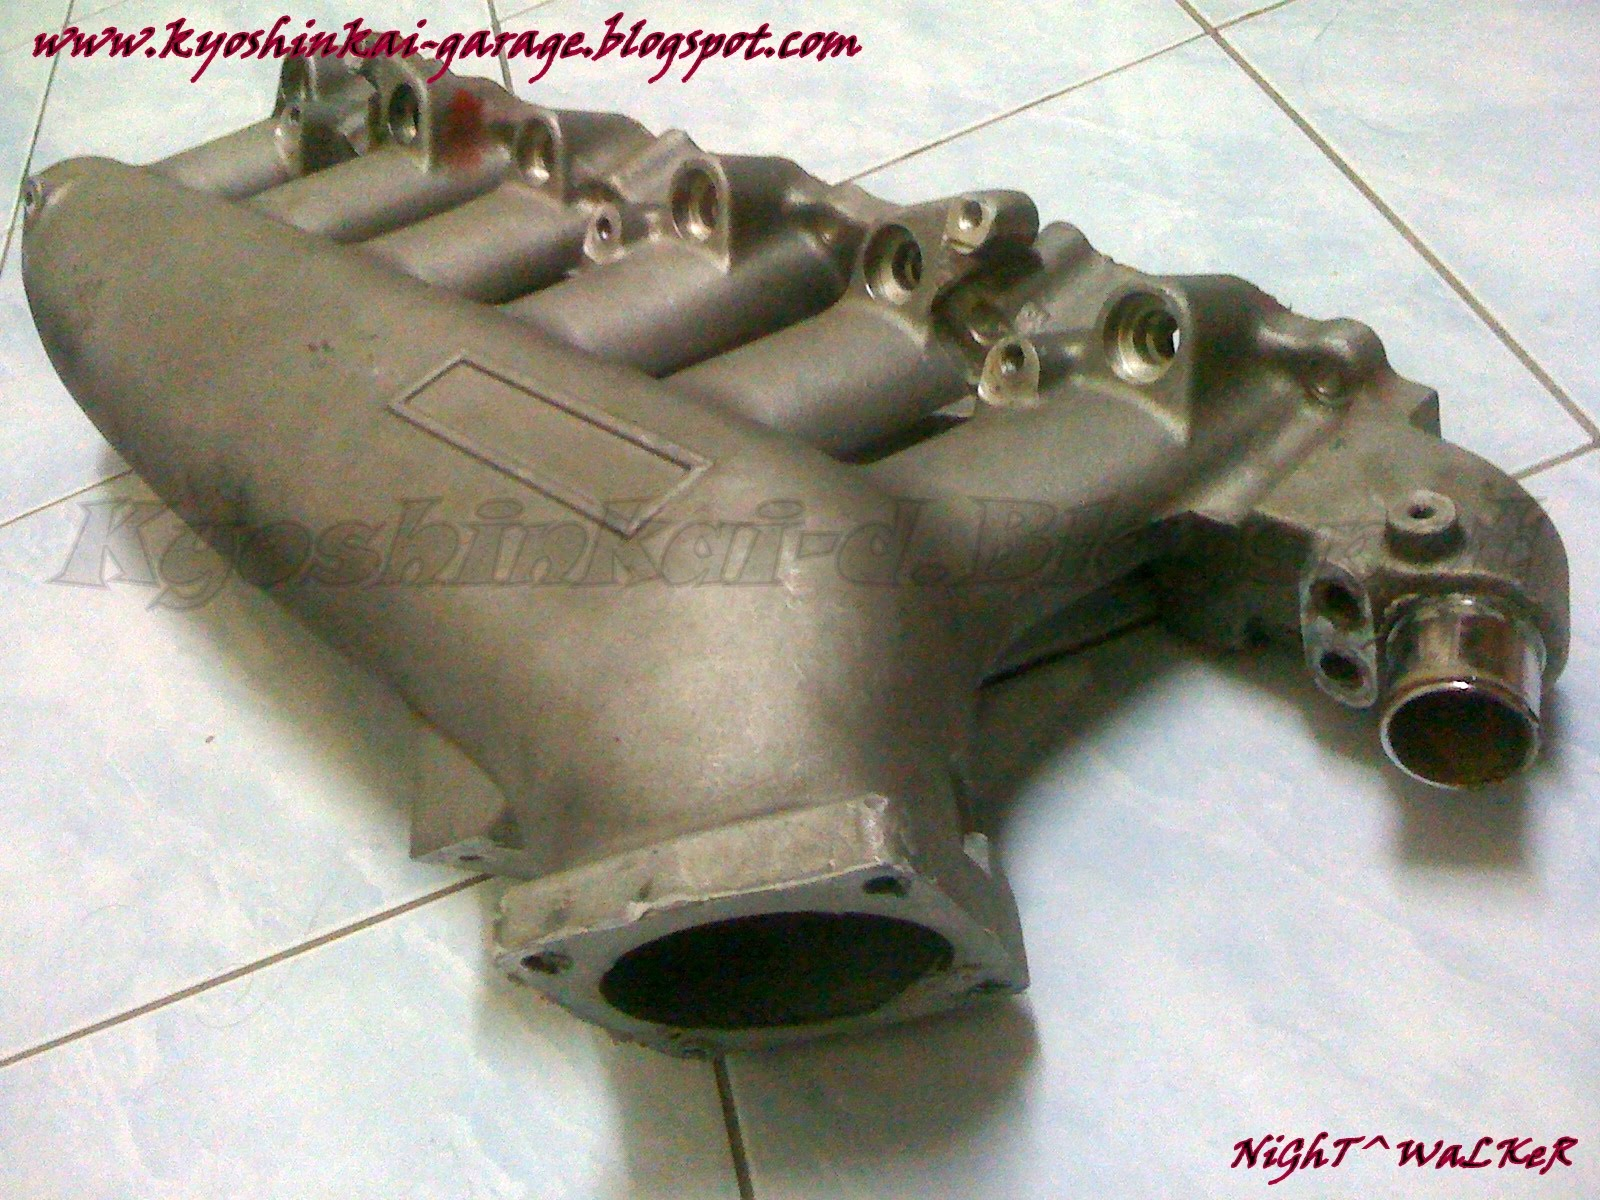 KyO's GaRaGe: GReDDy RB25DET InTaKe PLeNuM (USED) - FoR SaLe